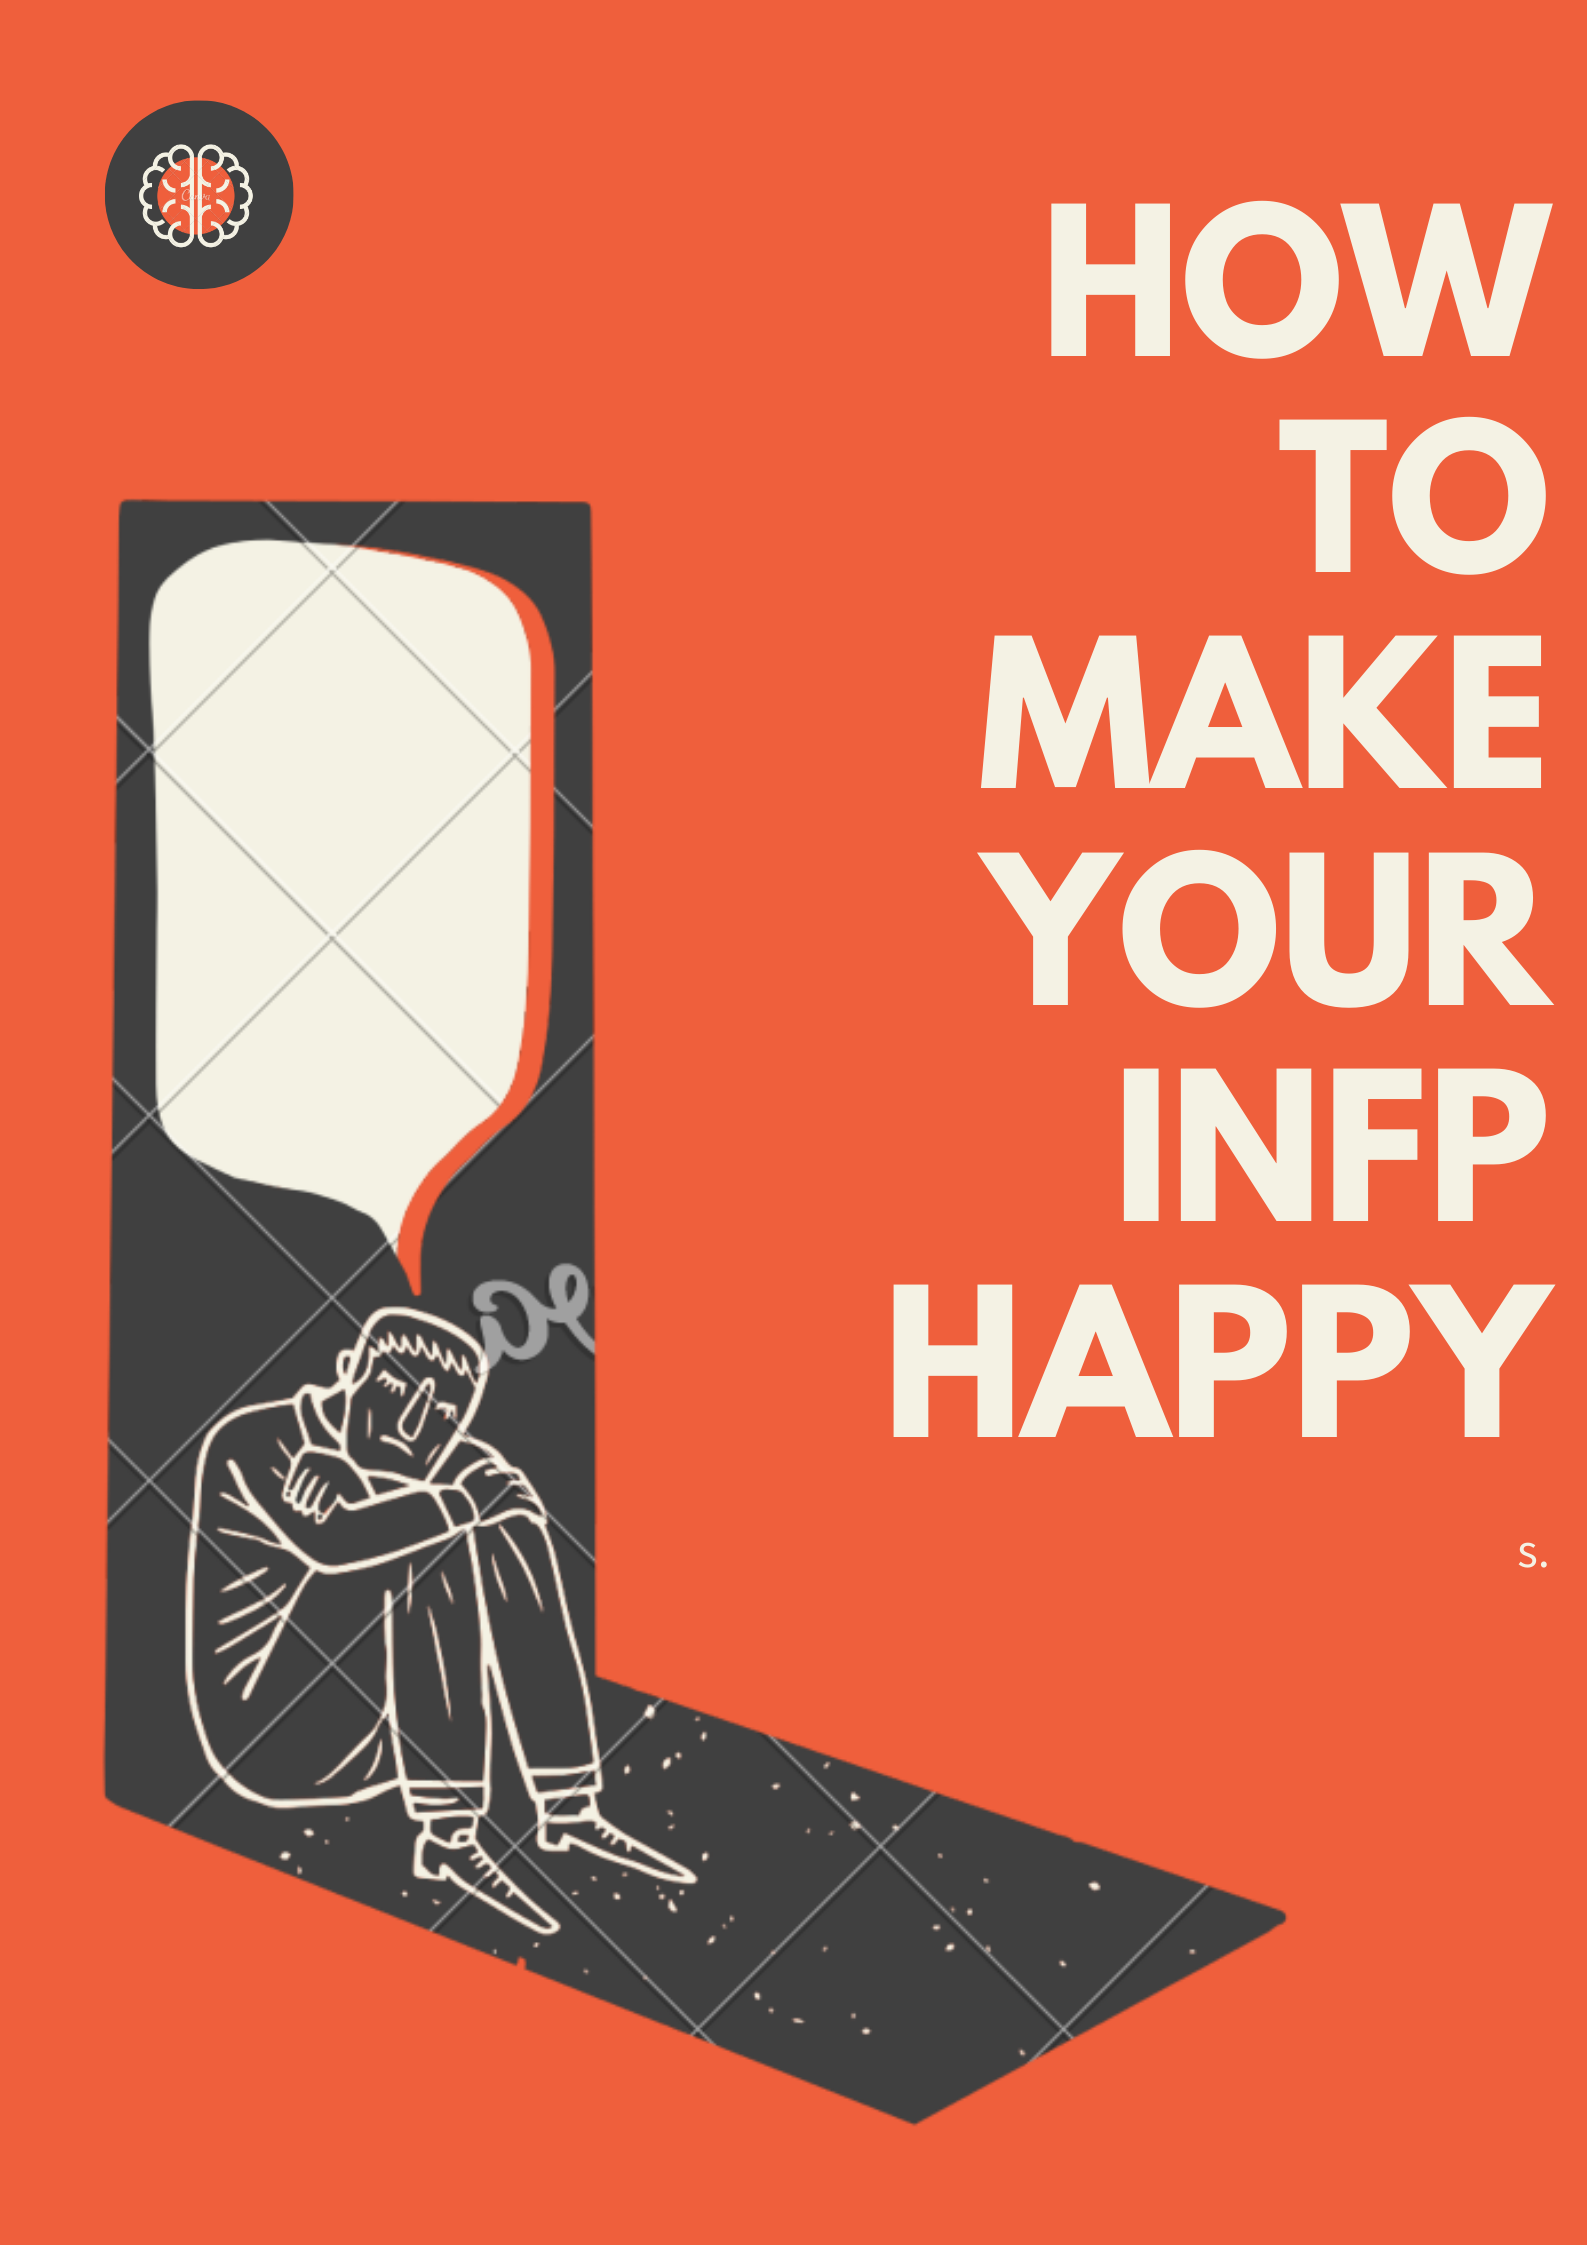 HOW TO MAKE YOUR INFP HAPPY.png